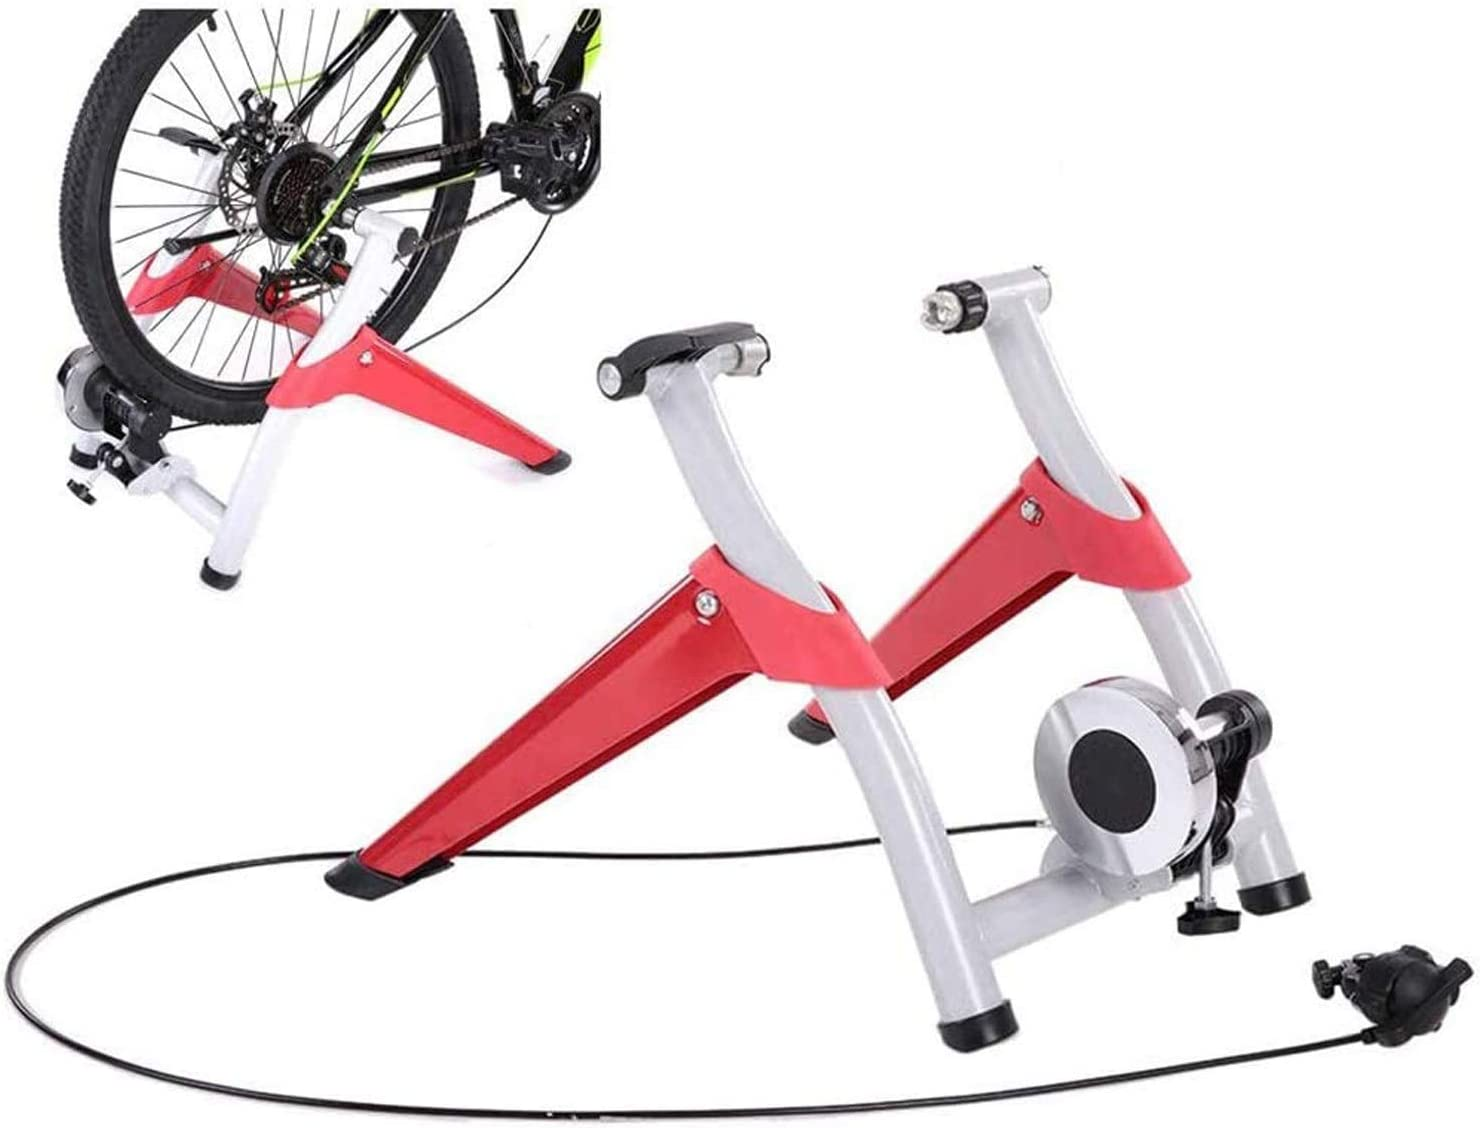 SJNQJJ Bike NEW before selling ☆ Trainer Stand 6 Ho Deluxe Indoor Foldable Levels Adjustable